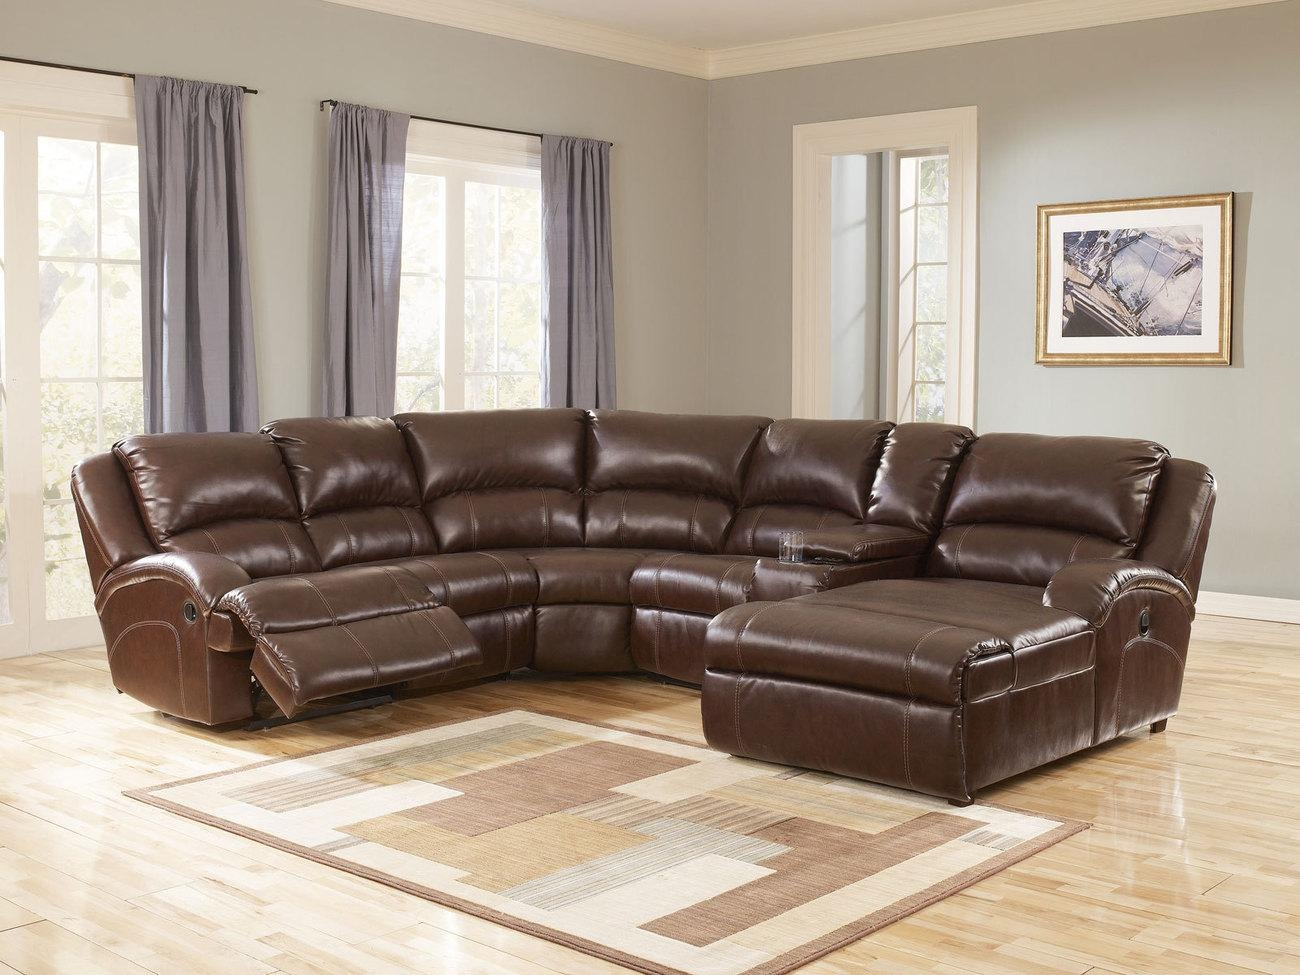 Furniture: Create Your Living Room With Cool Sectional Recliner Intended For Curved Sectional Sofa With Recliner (View 6 of 15)